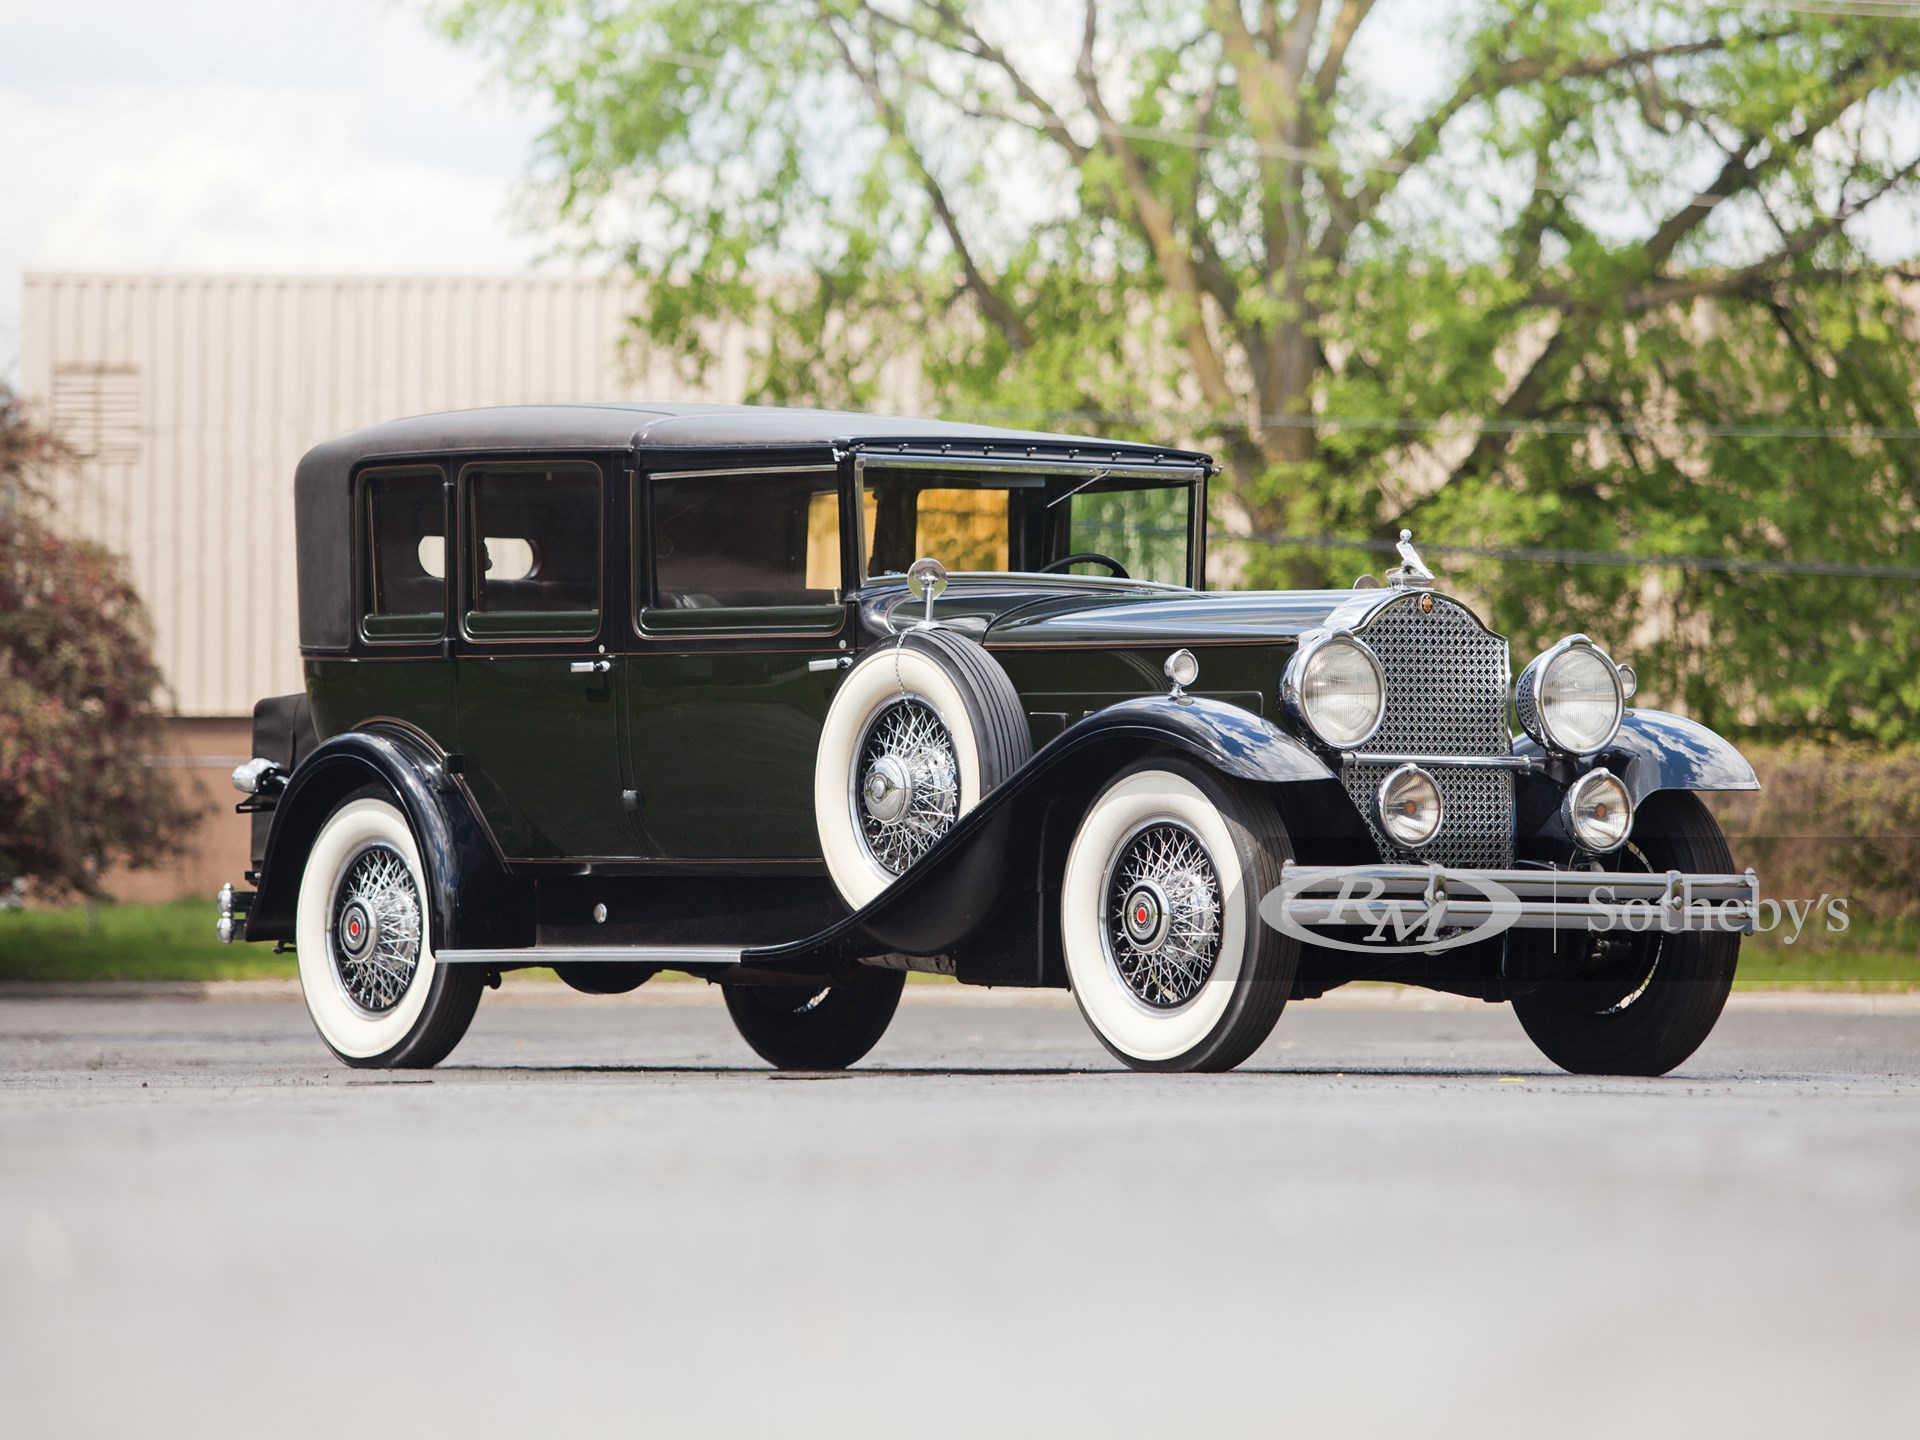 1930 Packard Deluxe Eight All-Weather Town Car by LeBaron